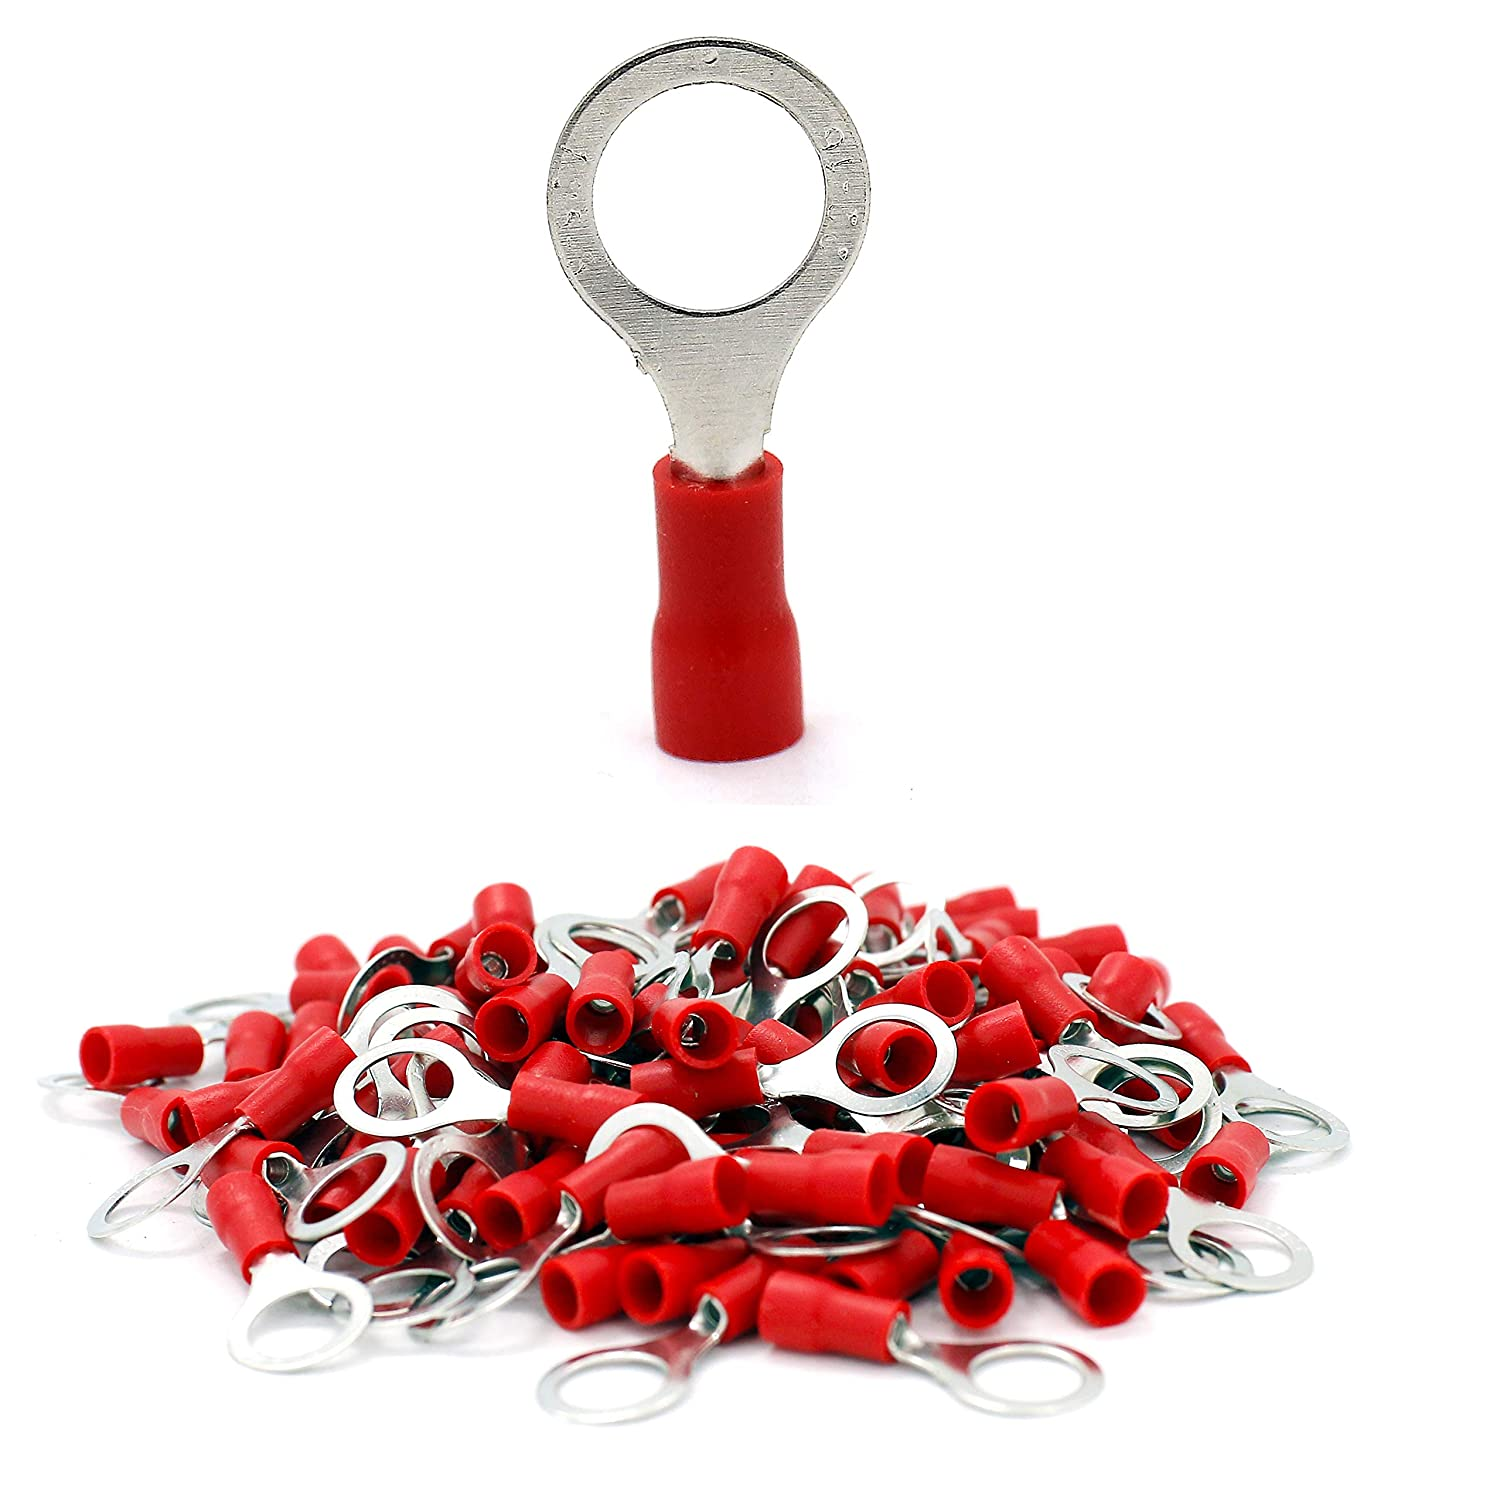 20Pcs 22-16 AWG M6 Assorted Insulated Ring Wire Crimp Connector Terminals Assortment Red